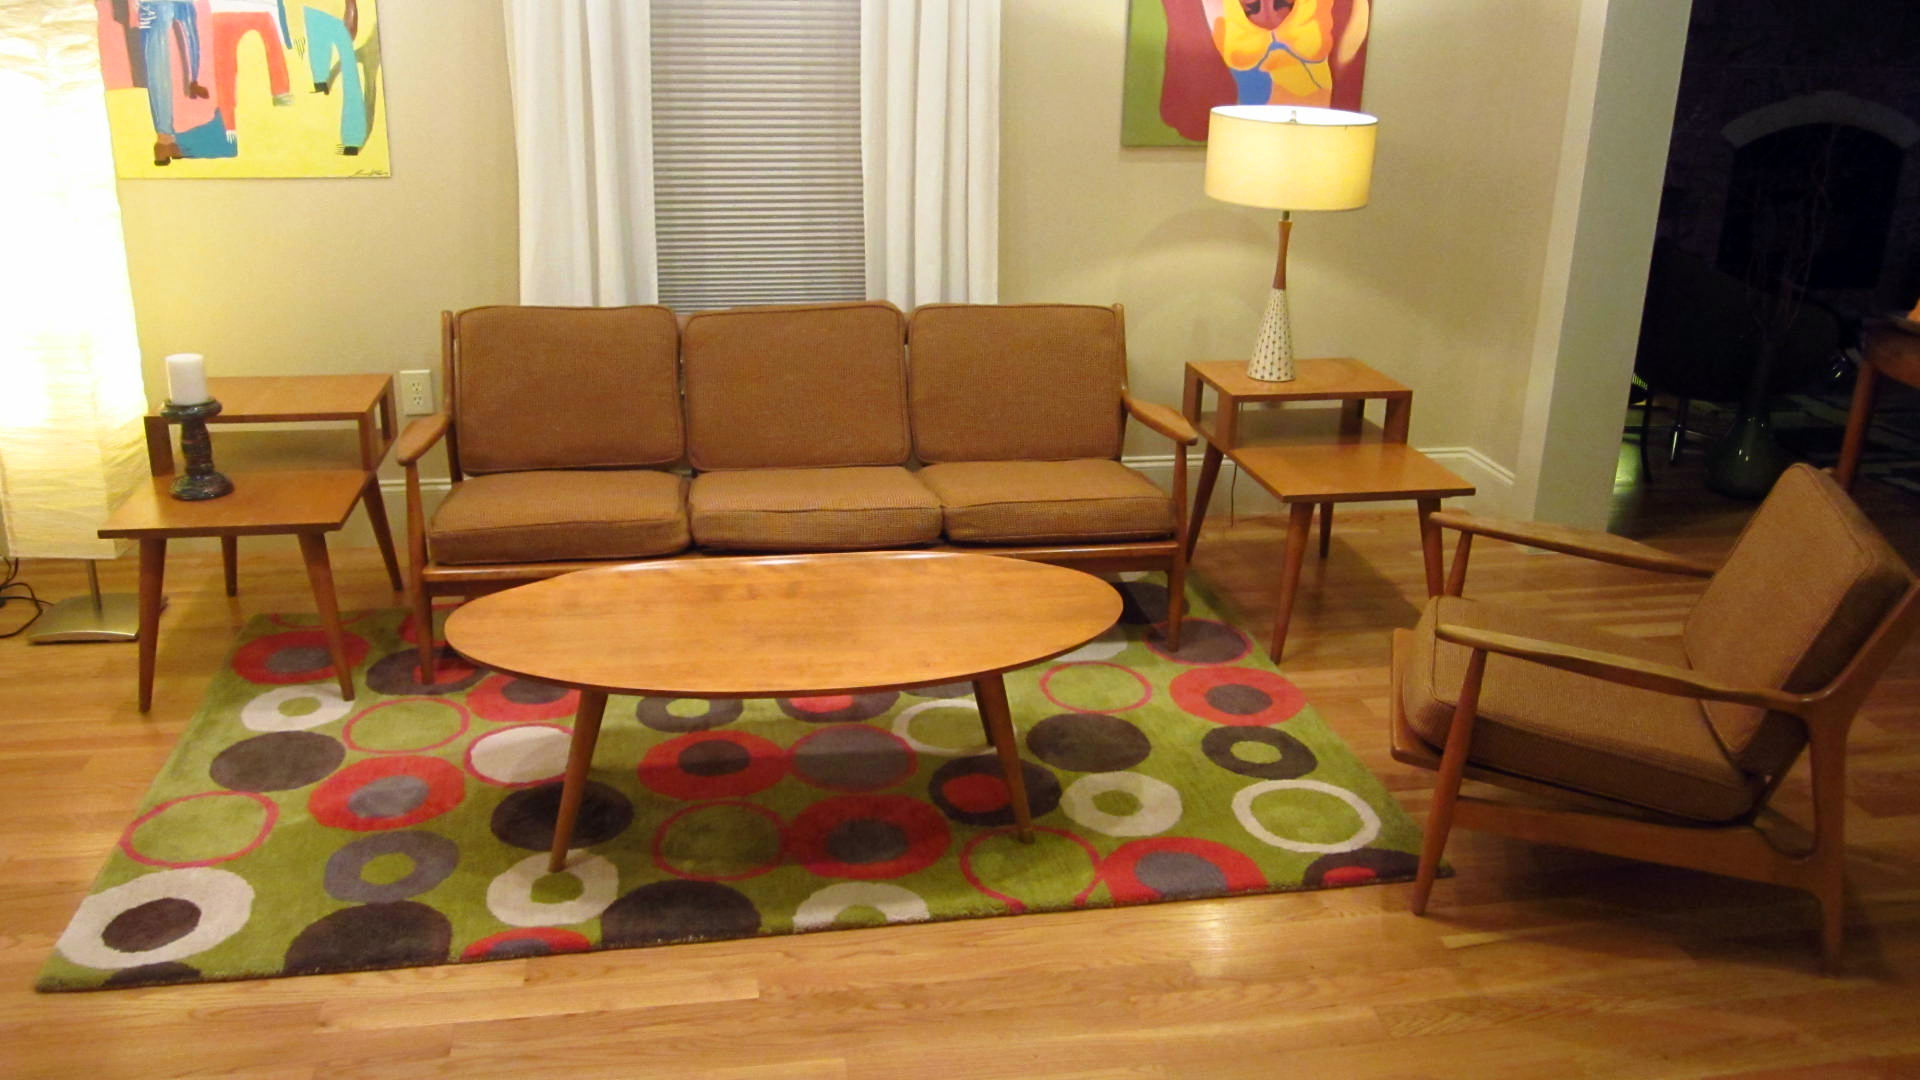 conant ball furniture mid century surfboard modern 1950s dining room living rare ebay. Black Bedroom Furniture Sets. Home Design Ideas